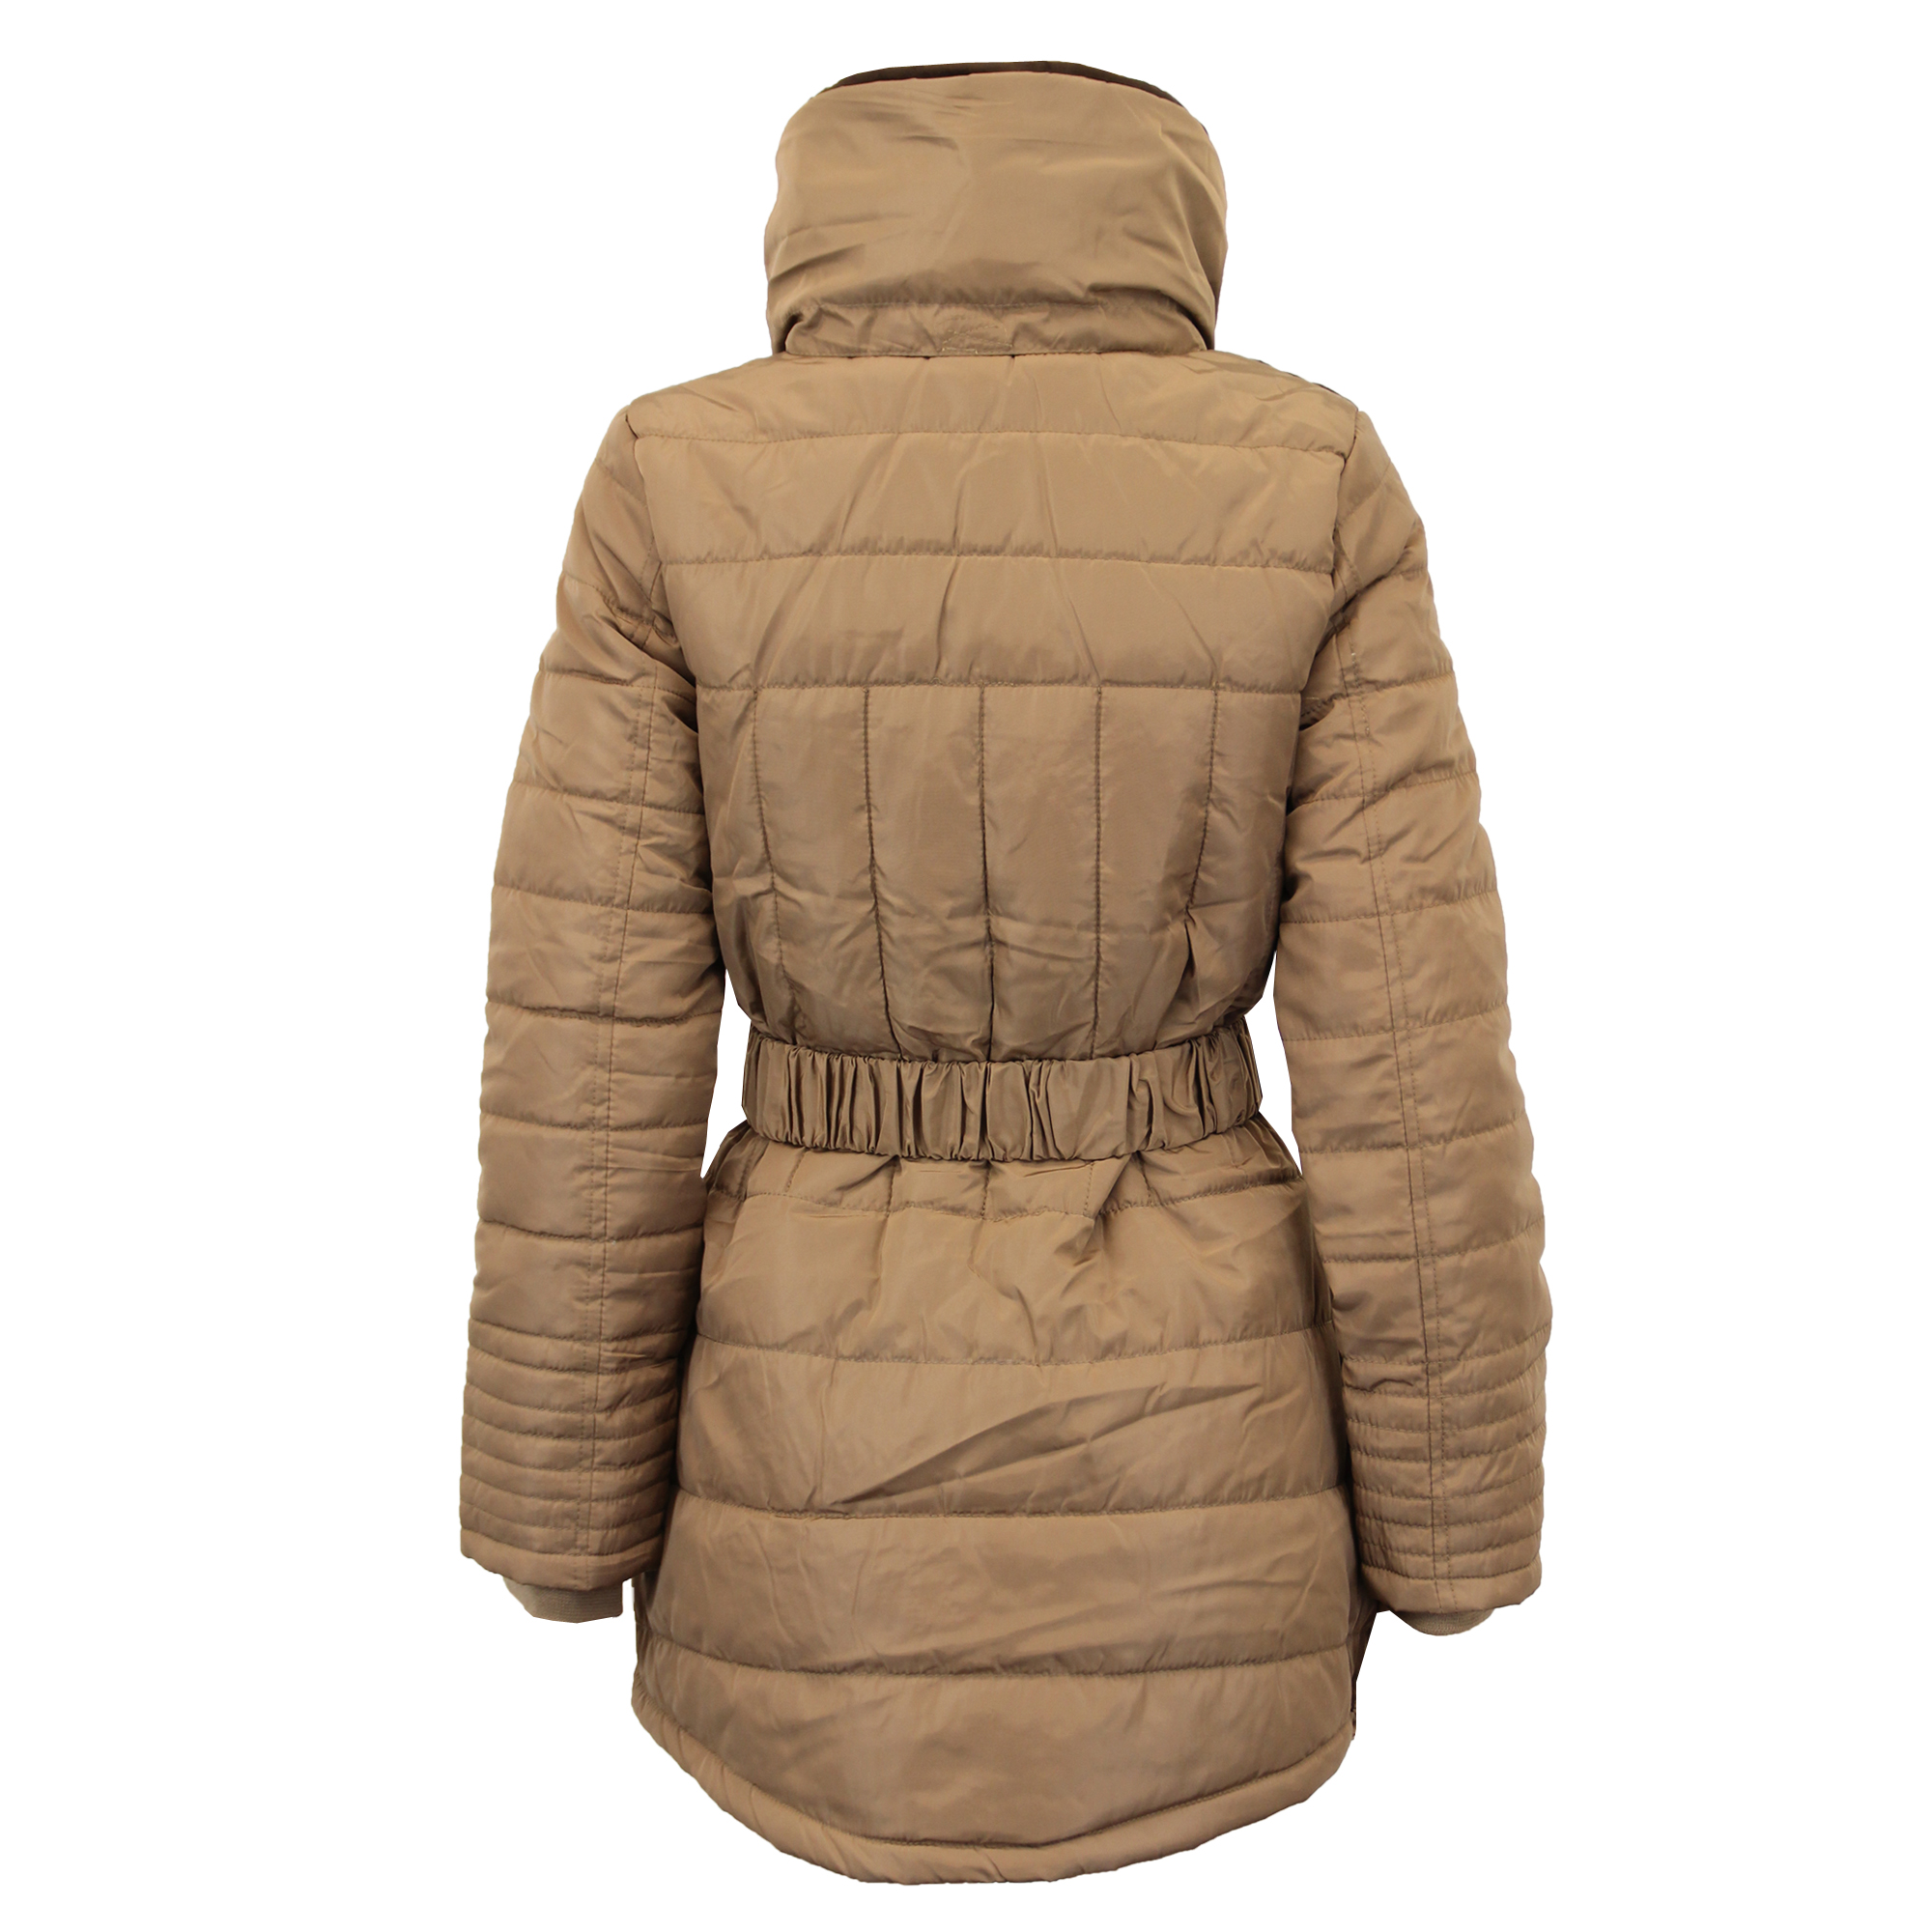 Brown Parka Jacket Womens | Outdoor Jacket